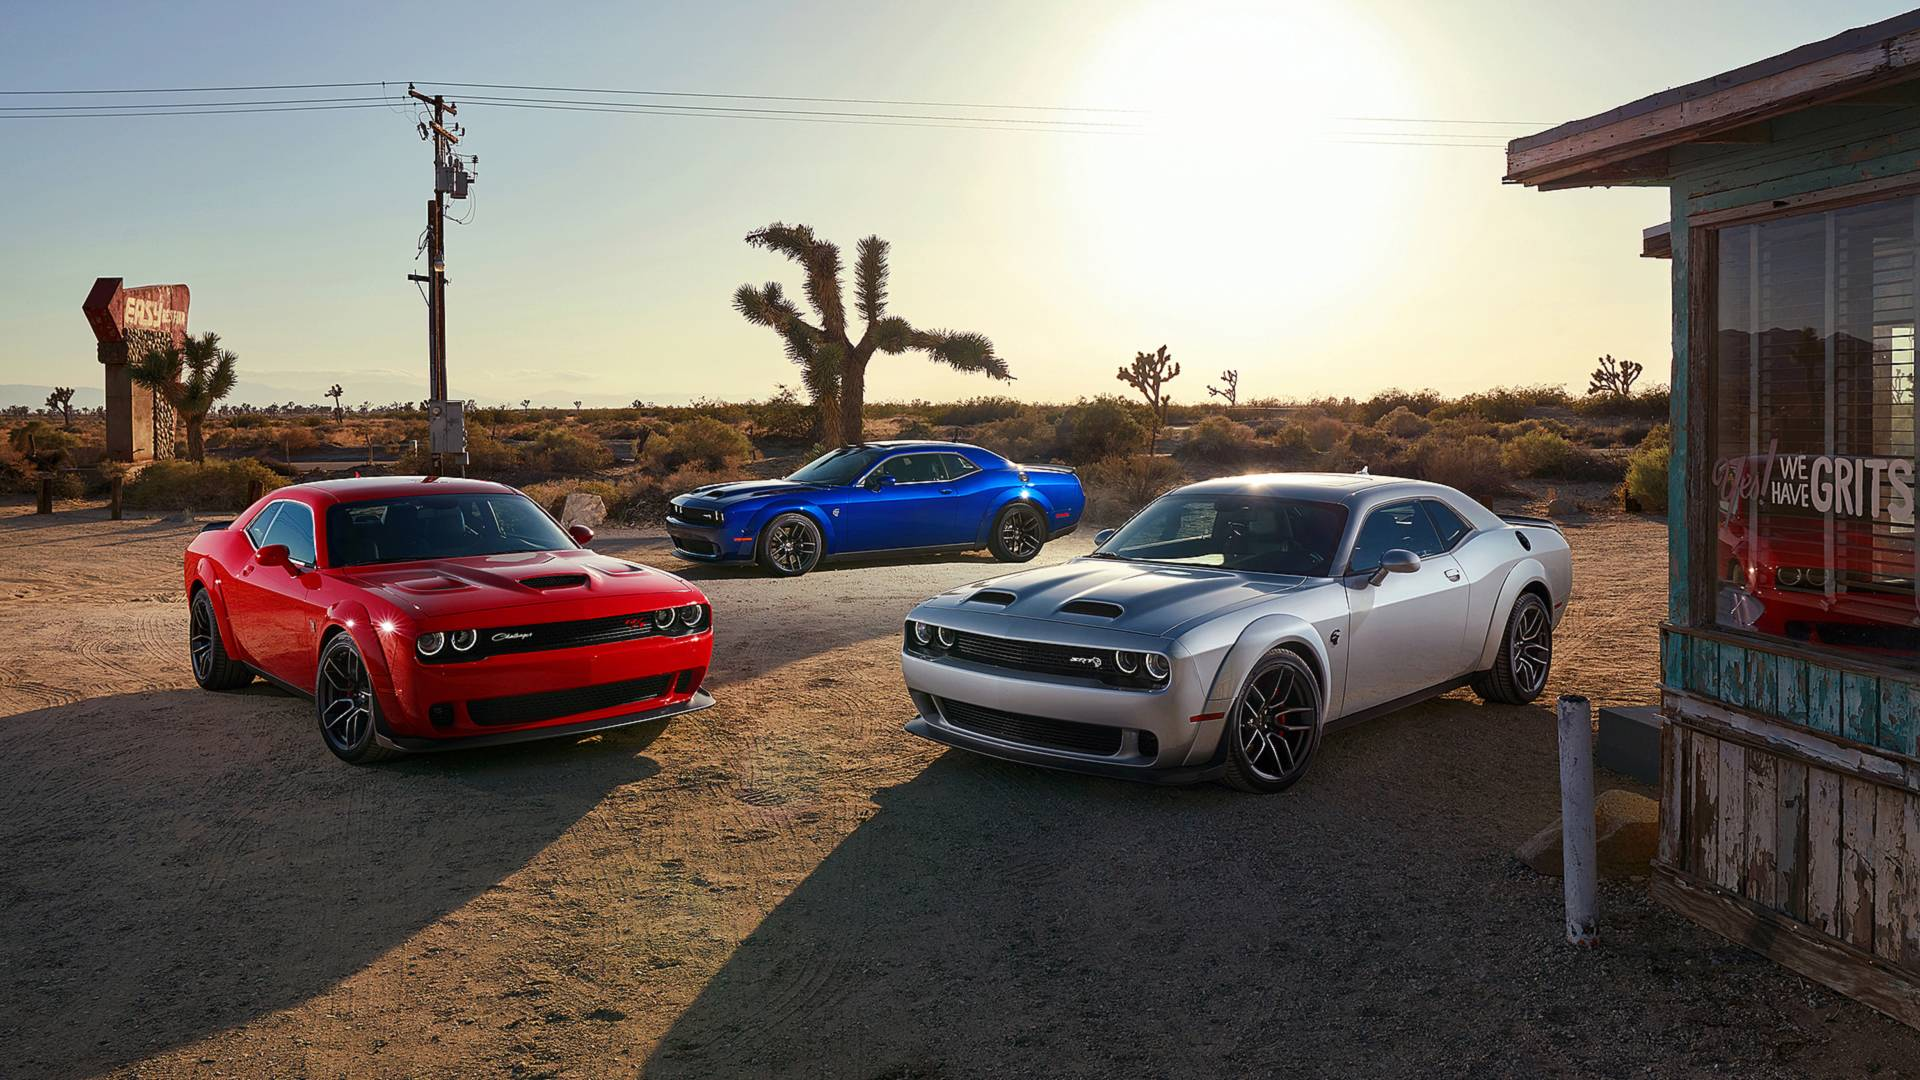 Gto Muscle Car Wallpaper 2019 Dodge Challenger Srt Hellcat Redeye Pricing Announced